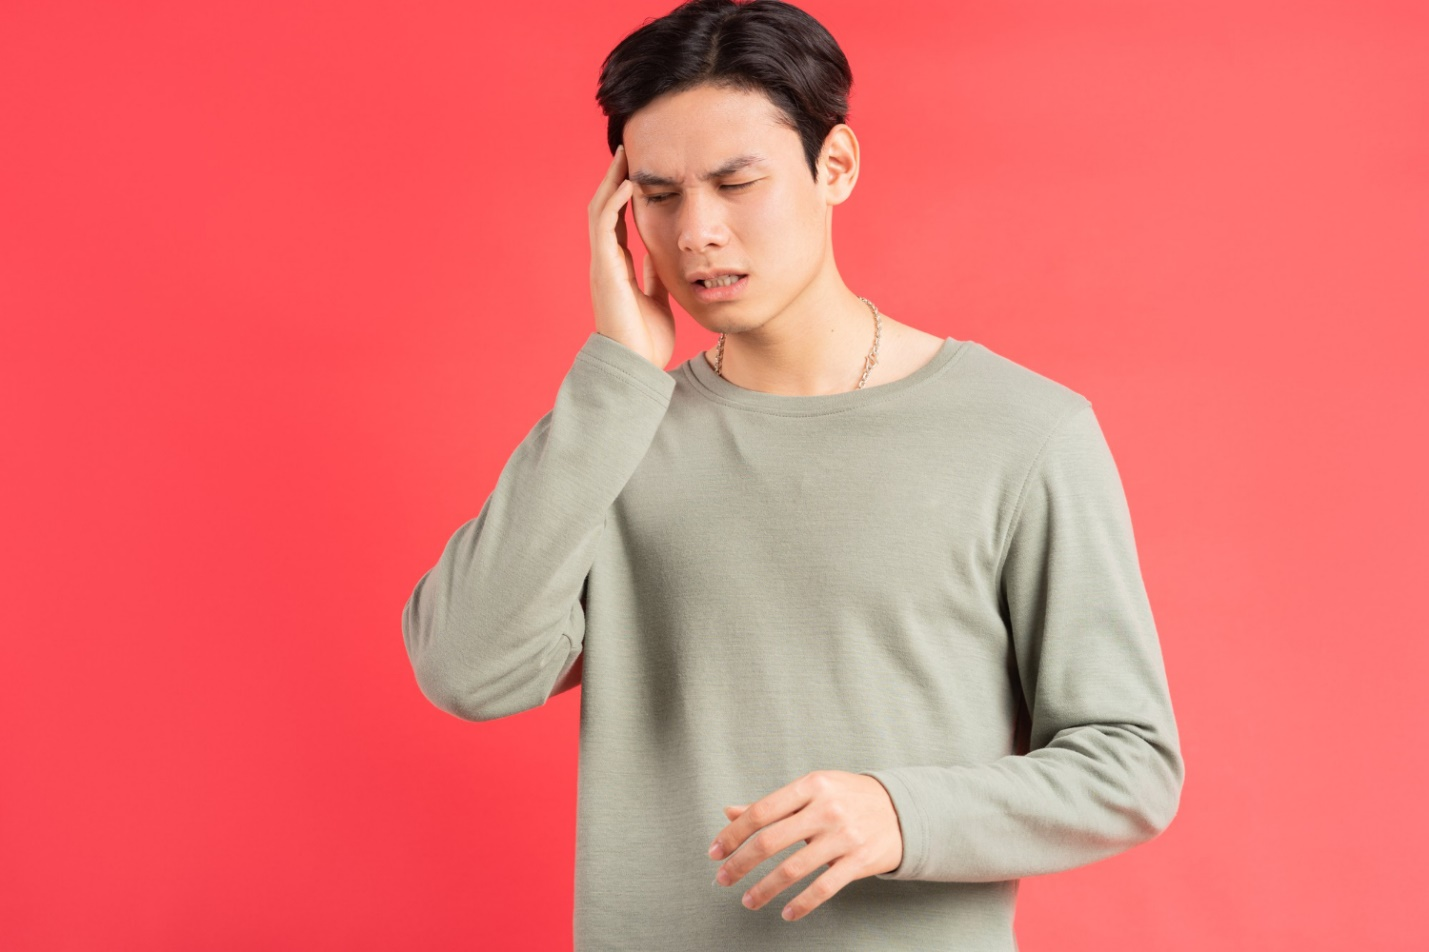 C:\Users\Dell\Downloads\photo-handsome-asian-man-rubbing-his-head-with-his-hand-because-his-migraine.jpg